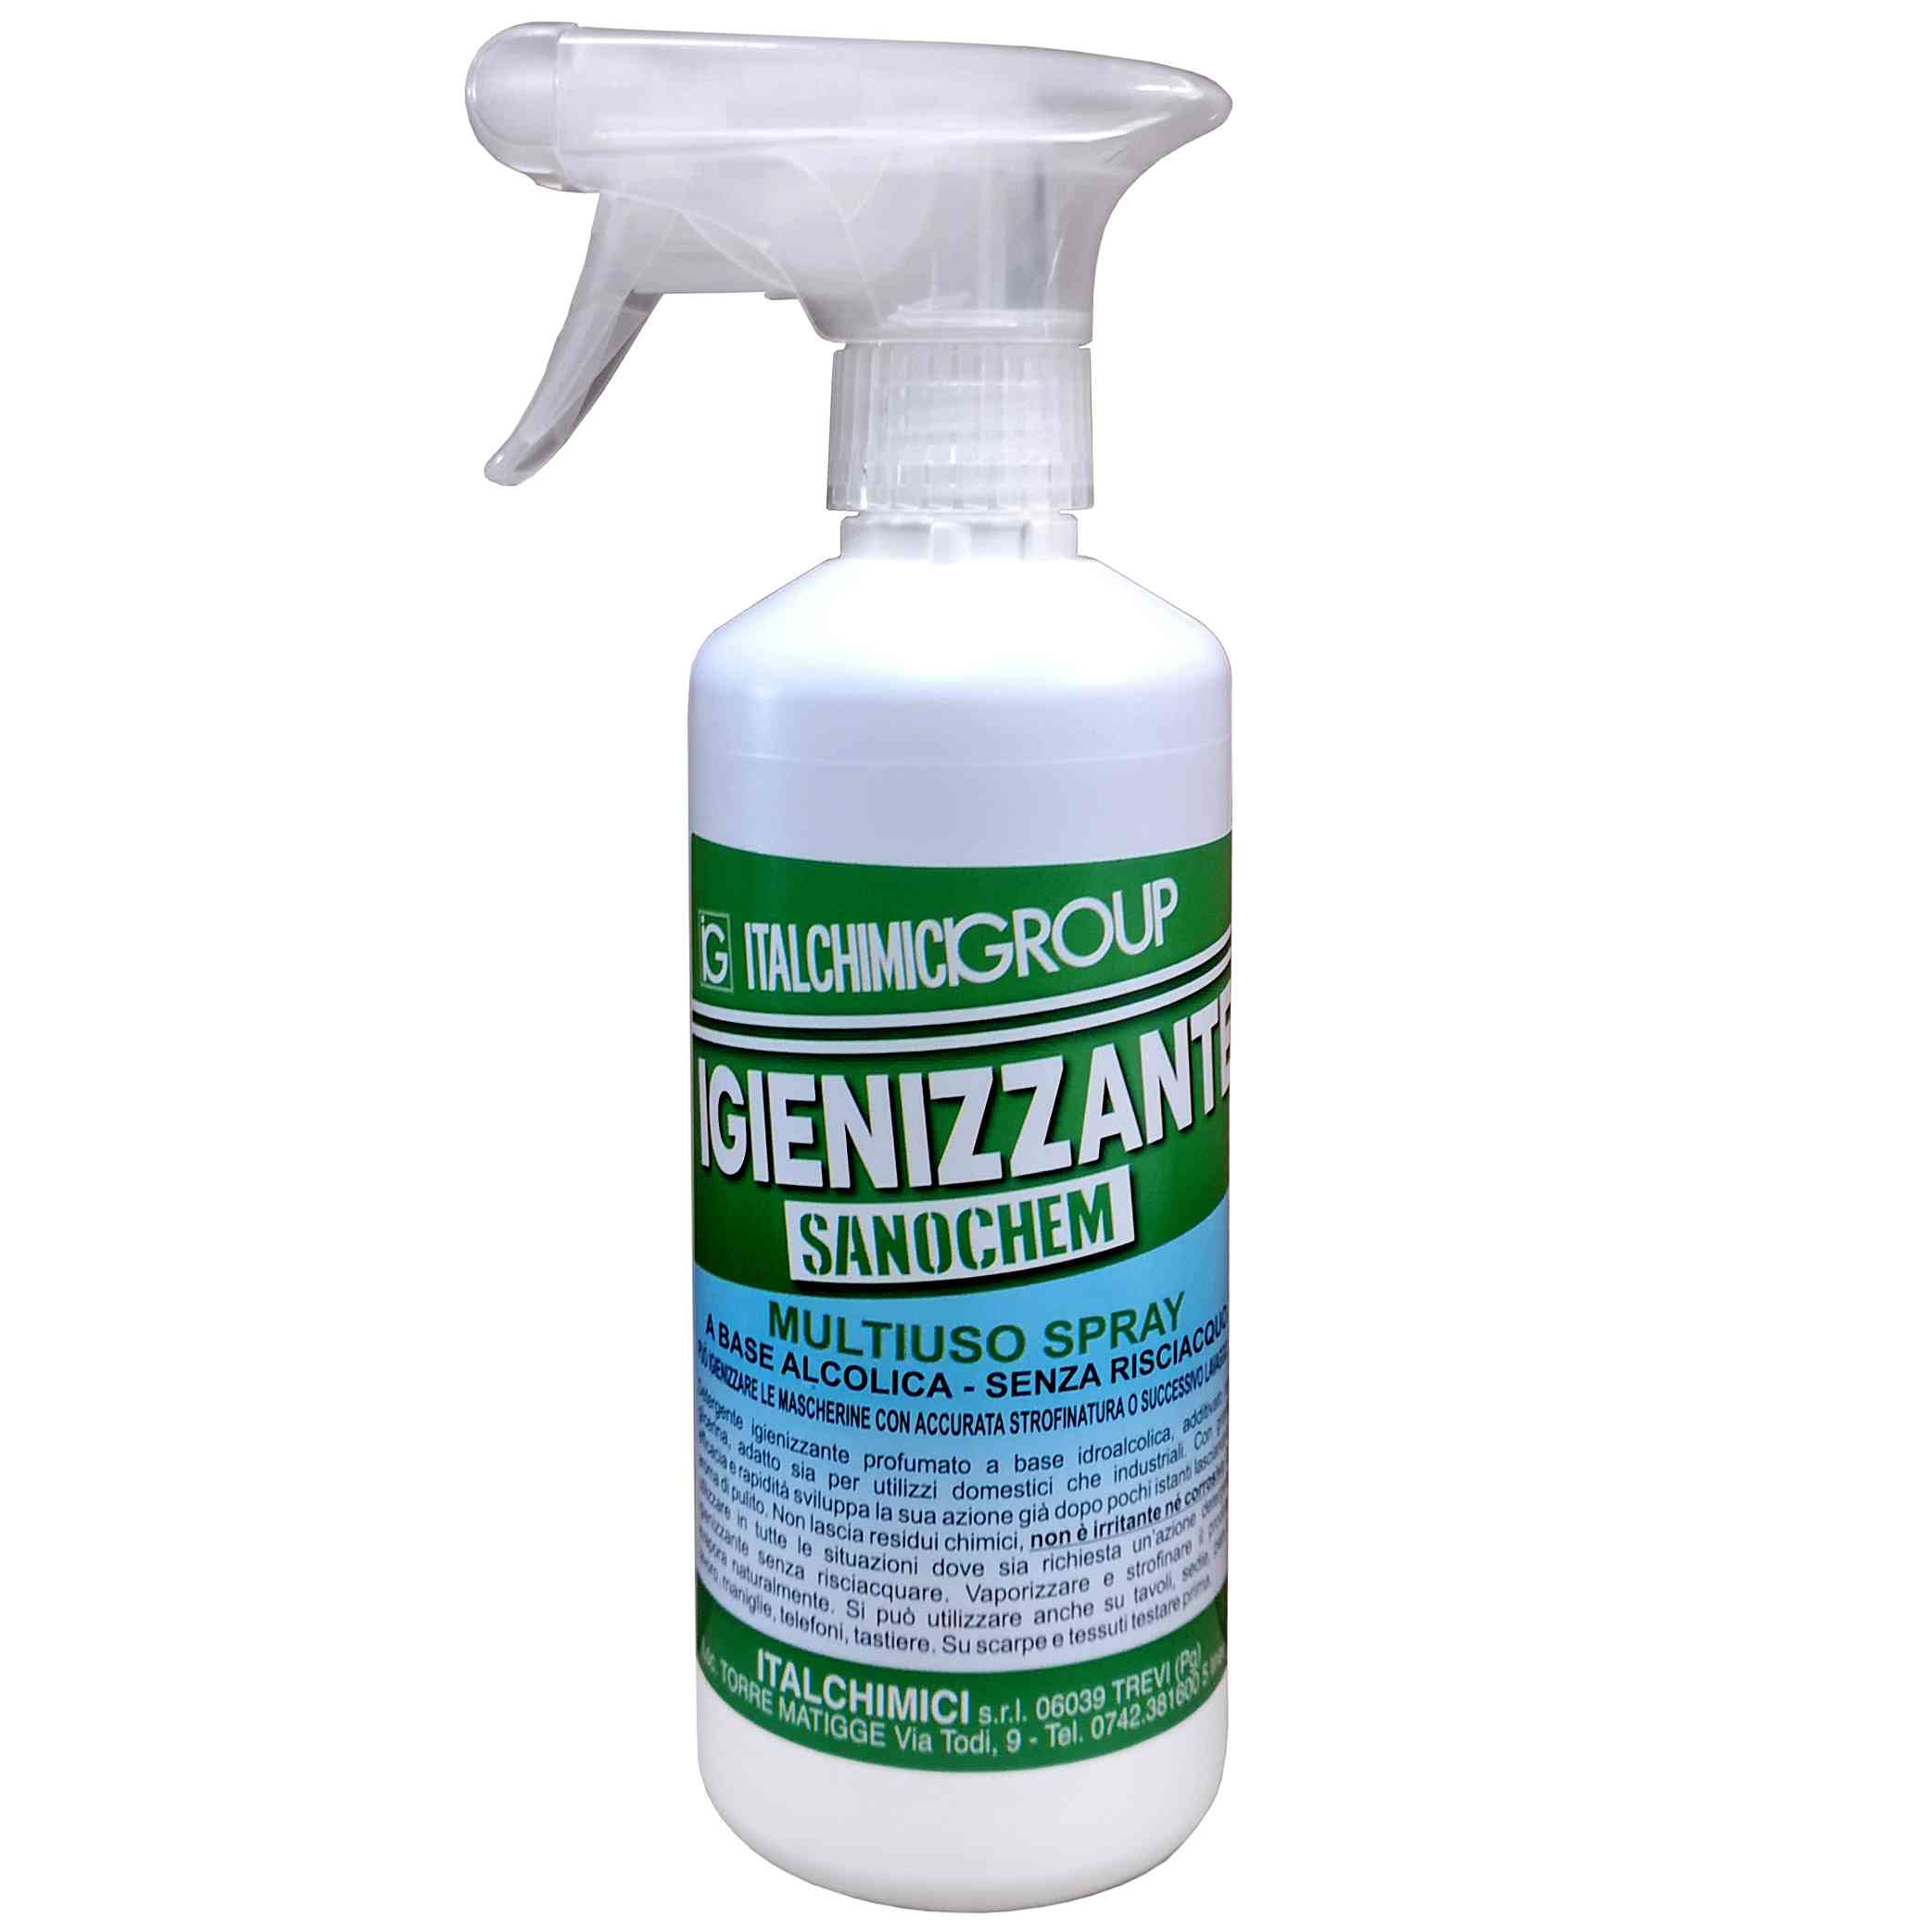 15 PZ Di IGIENIZZANTE 'SANOCHEM' SPRAY 500ML MULTIUSO